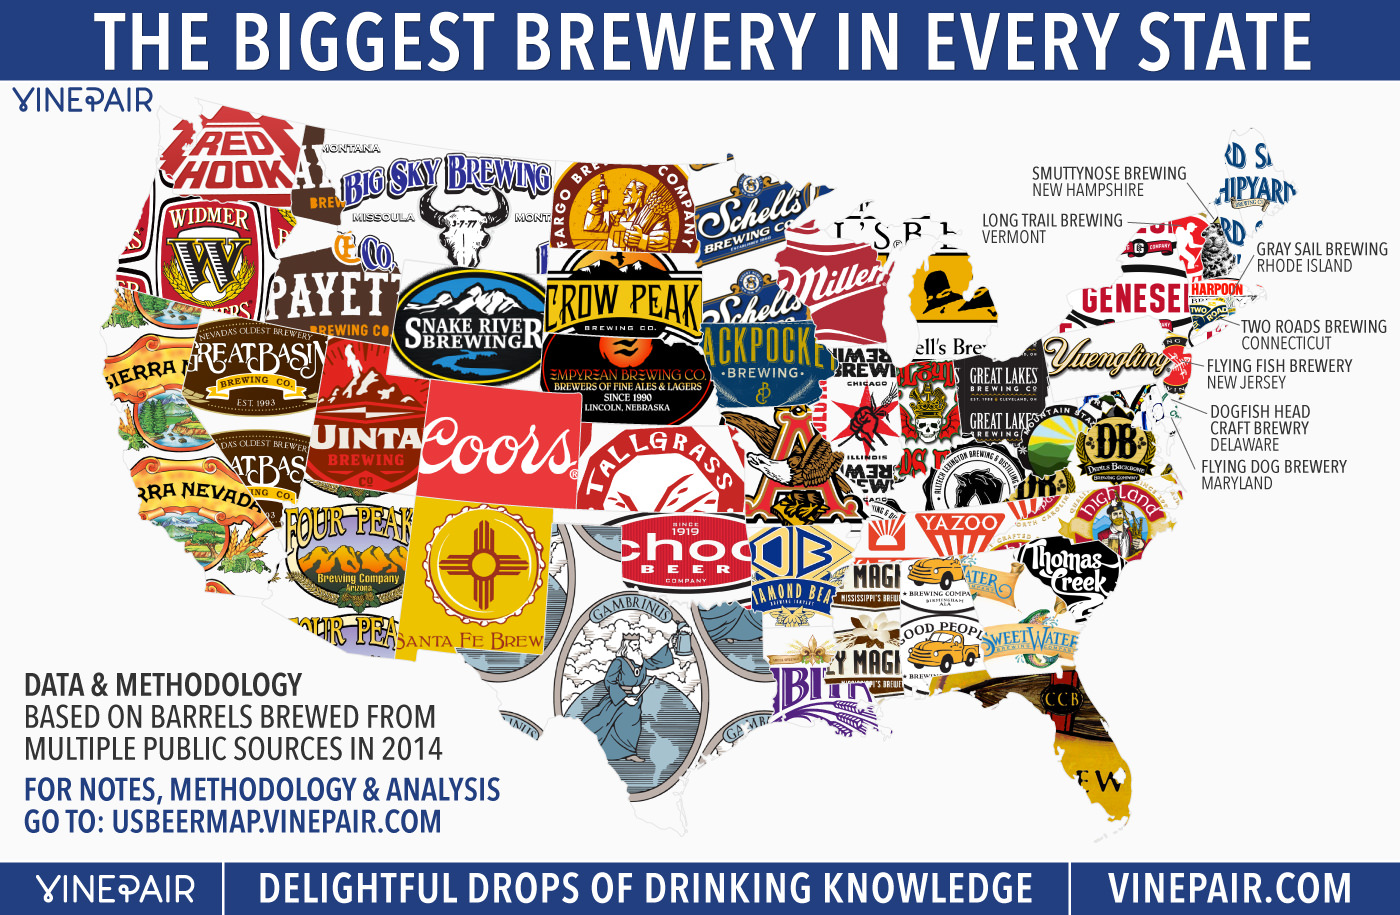 united states brewery map MAP: The Biggest Brewery In Every State In America | VinePair